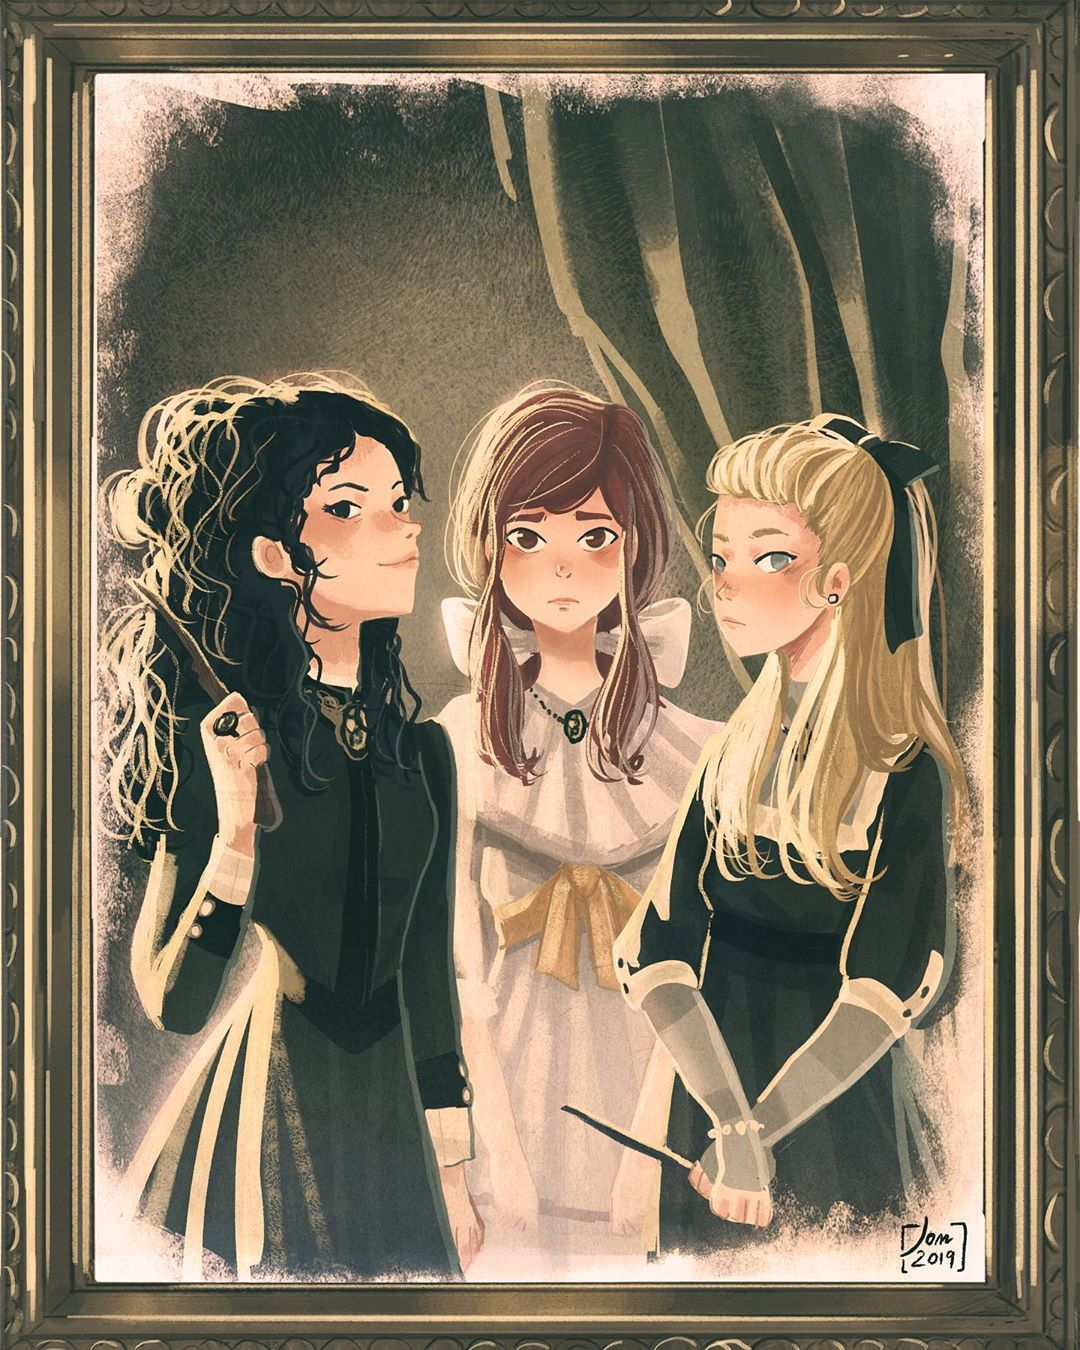 What You Should Wear To Black Sister Hair Com Black Sister Hair Com Anime De Harry Potter Arte De Harry Potter Personajes De Harry Potter